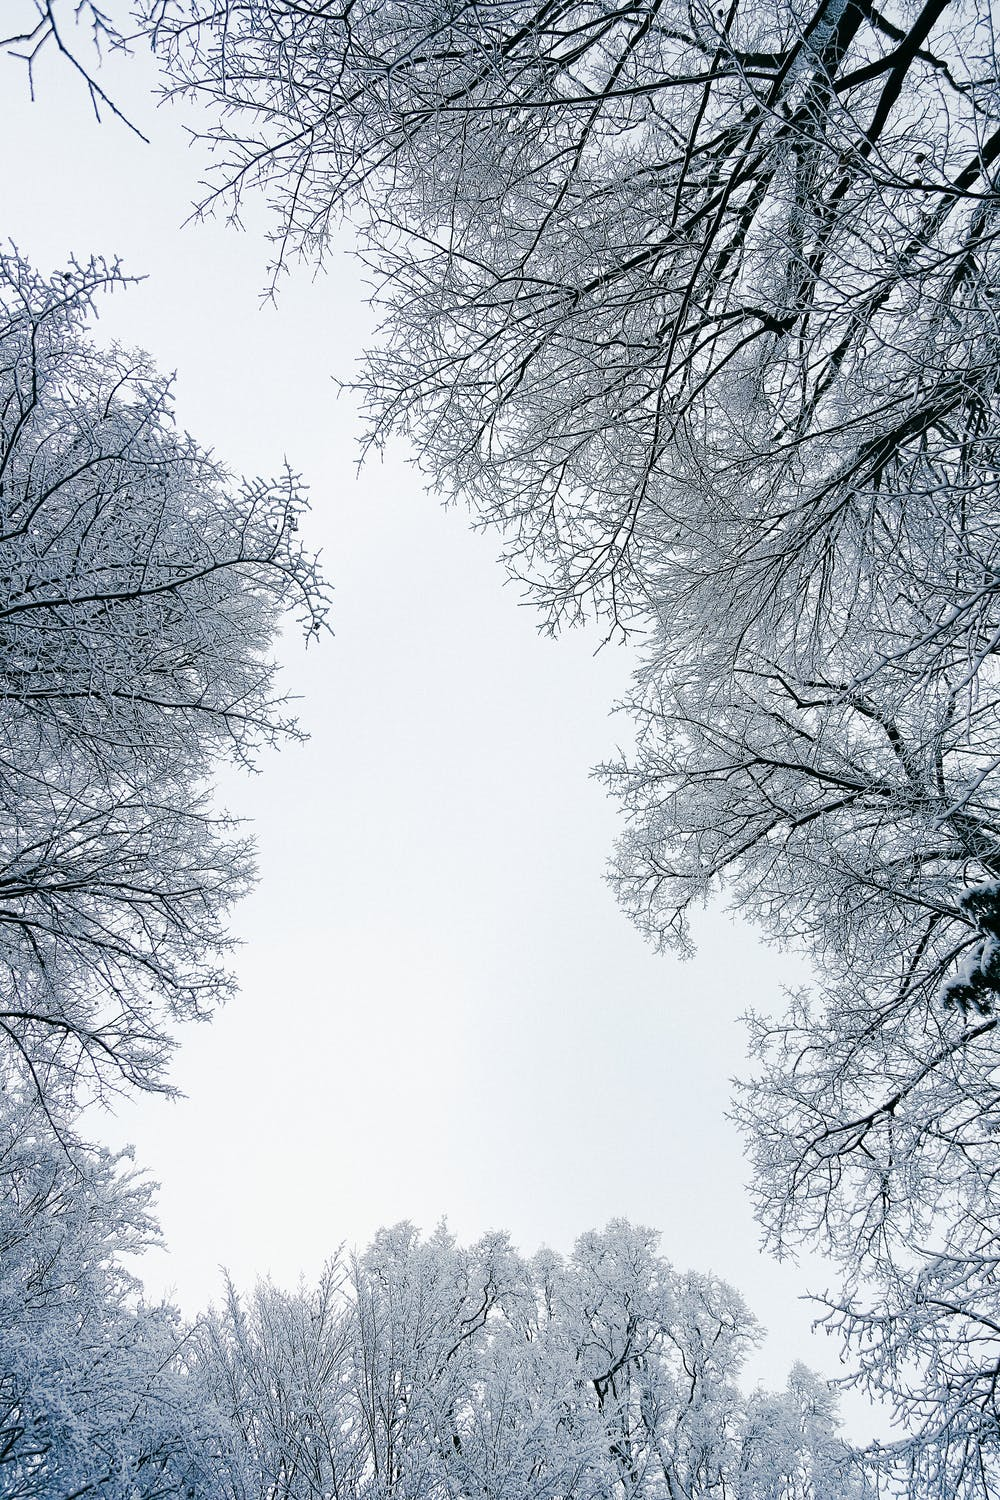 Winter wallpaper with snowy trees